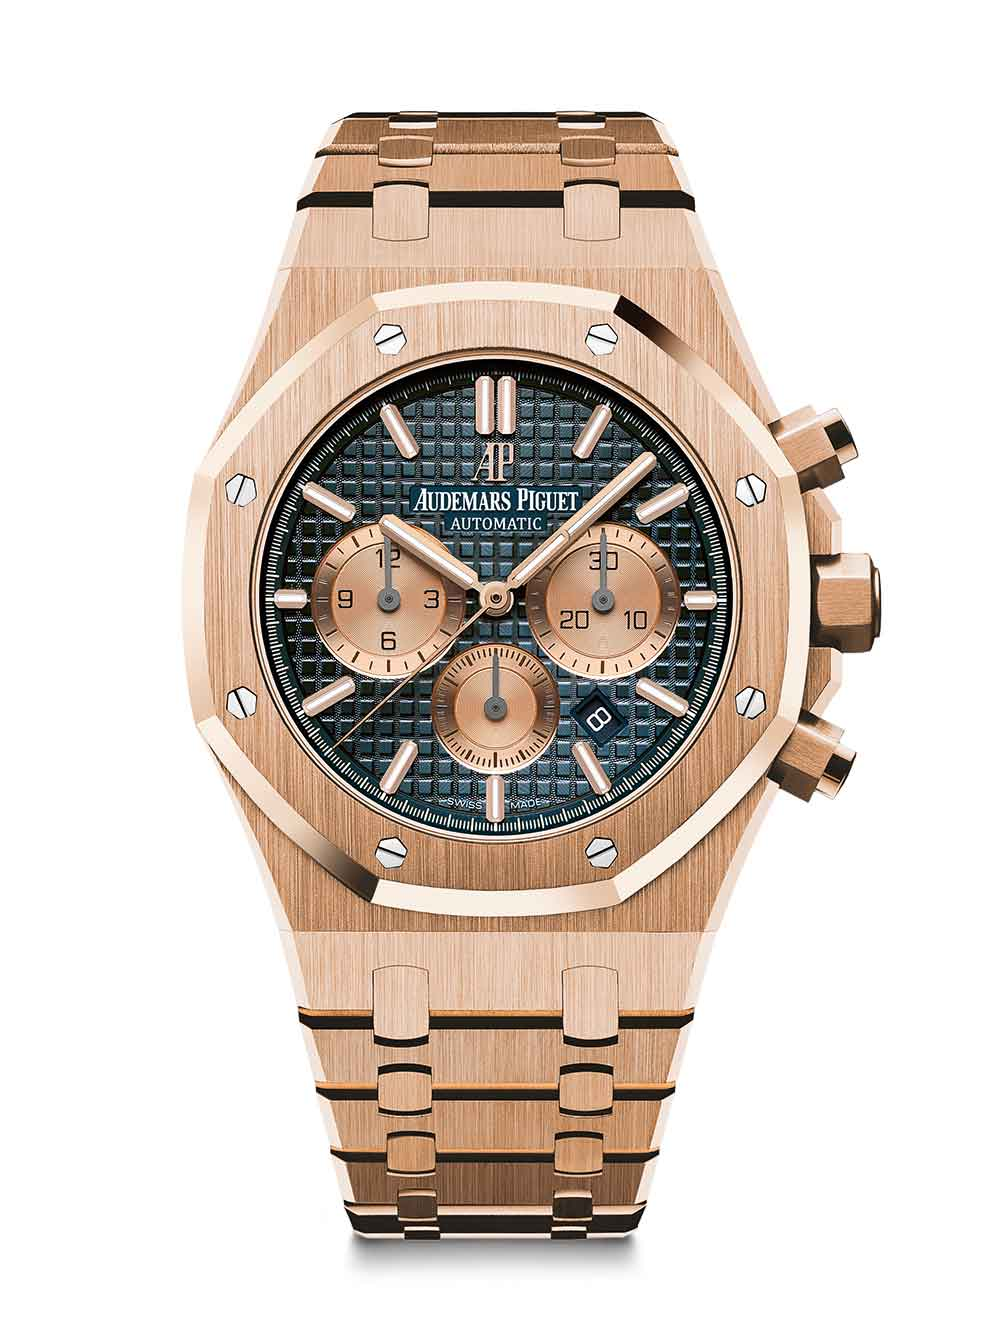 Royal Oak Chronograph, pink gold, blue dial, pink gold bracelet, reference 26331OR.OO.1220OR.01